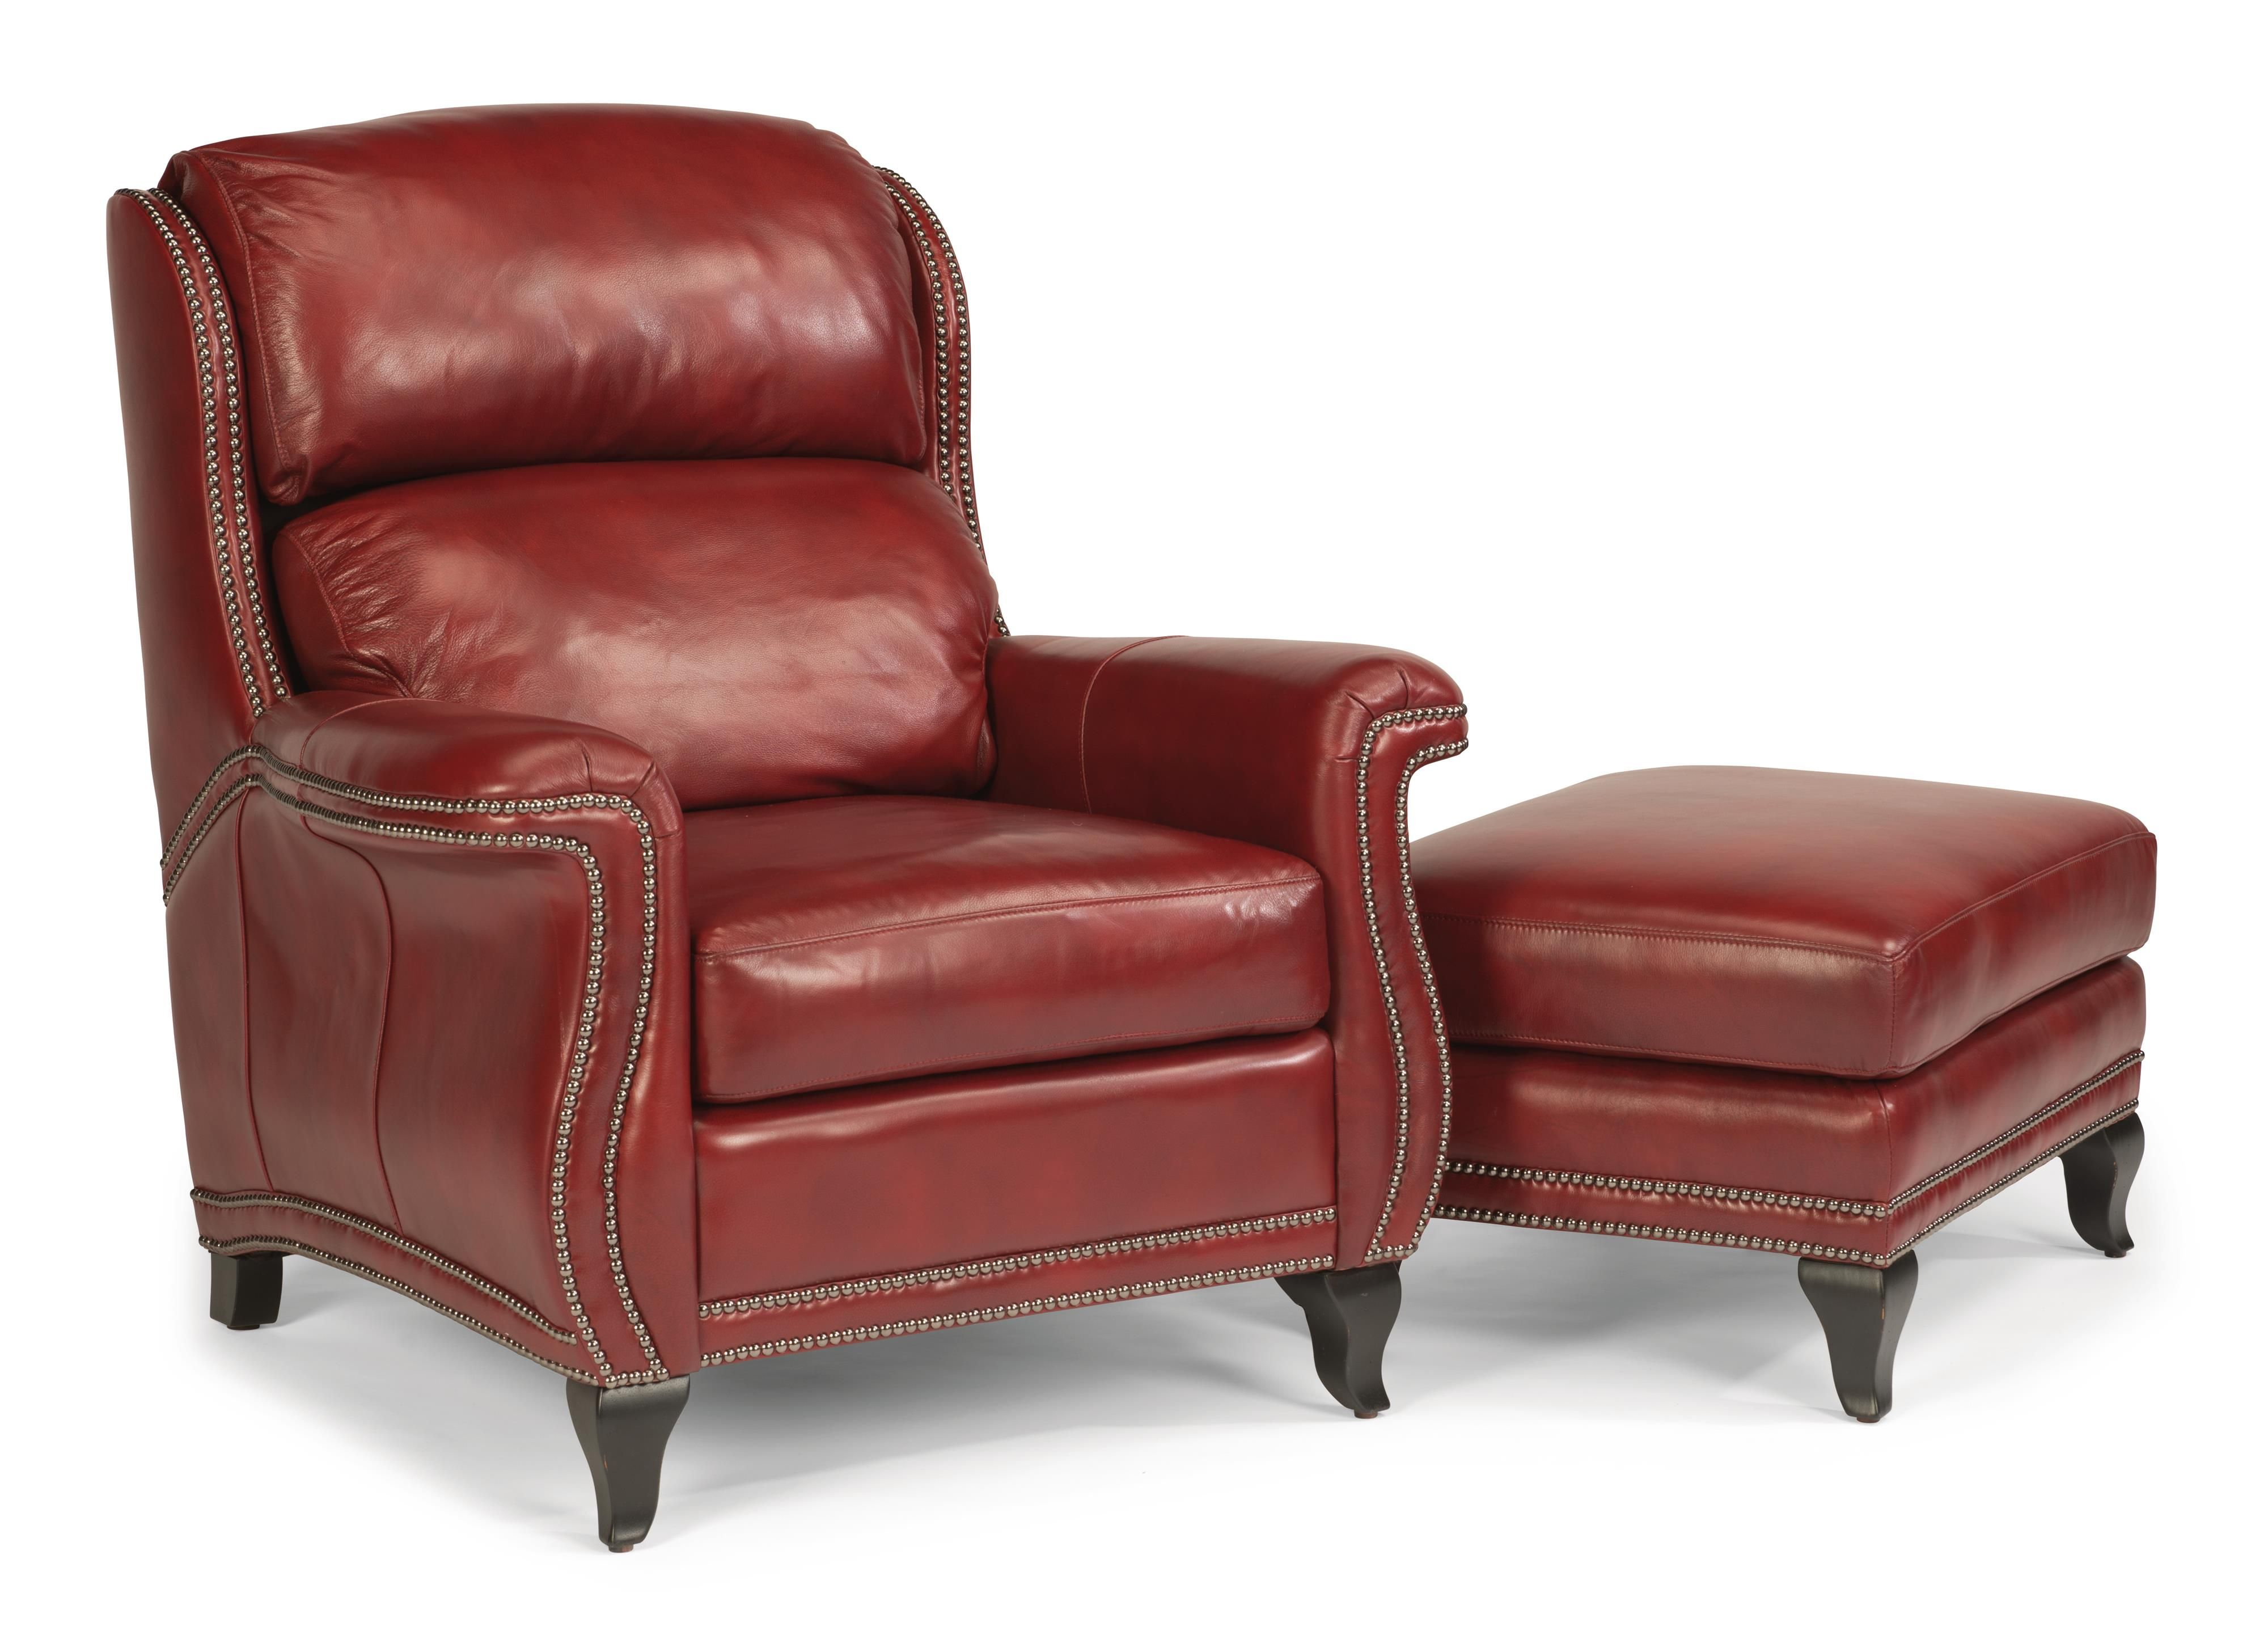 flexsteel at godby Red leather chair, American home